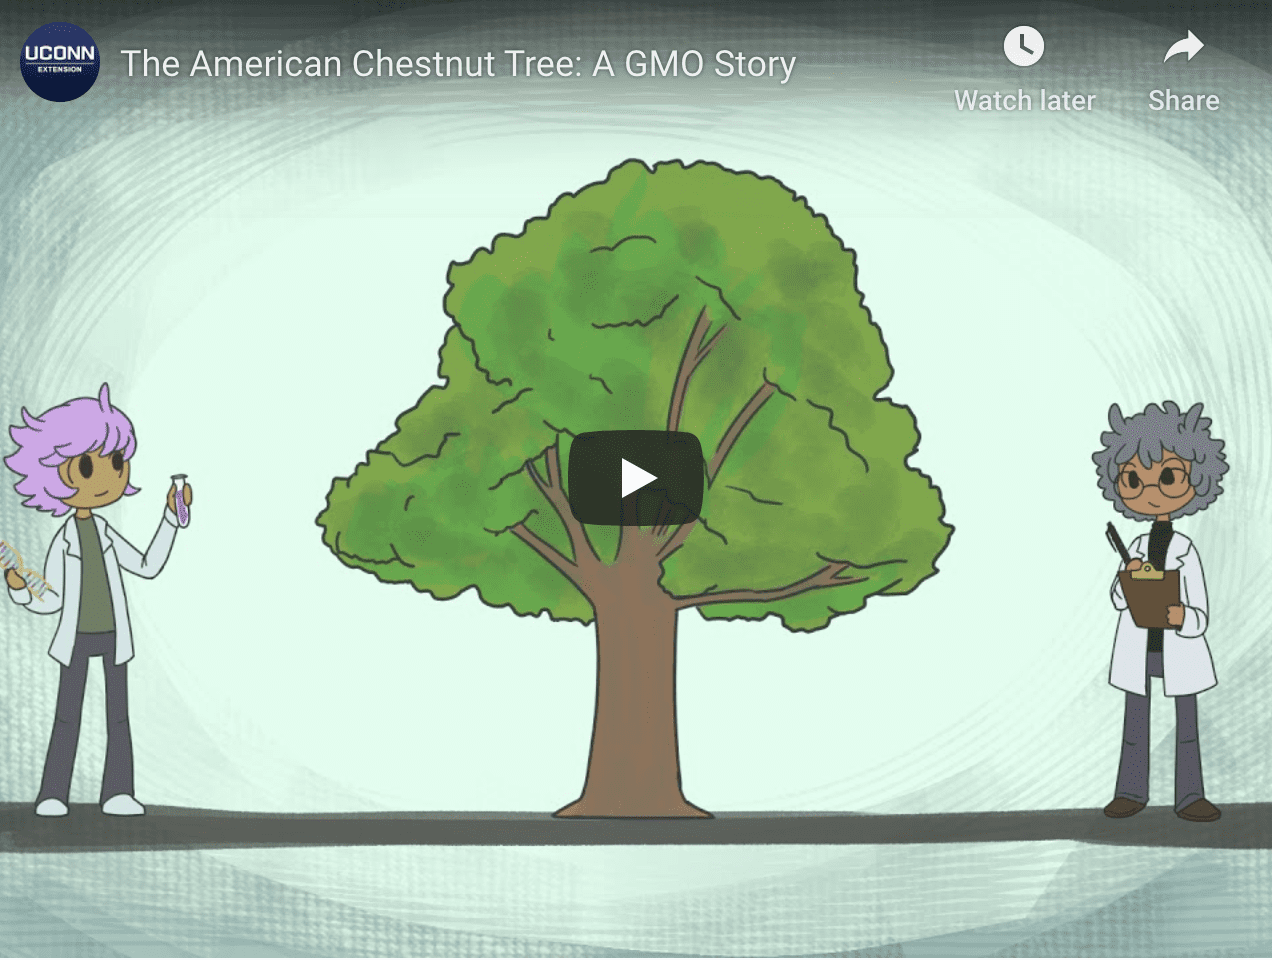 American Chestnut Tree animation opening video photo with tree and two people